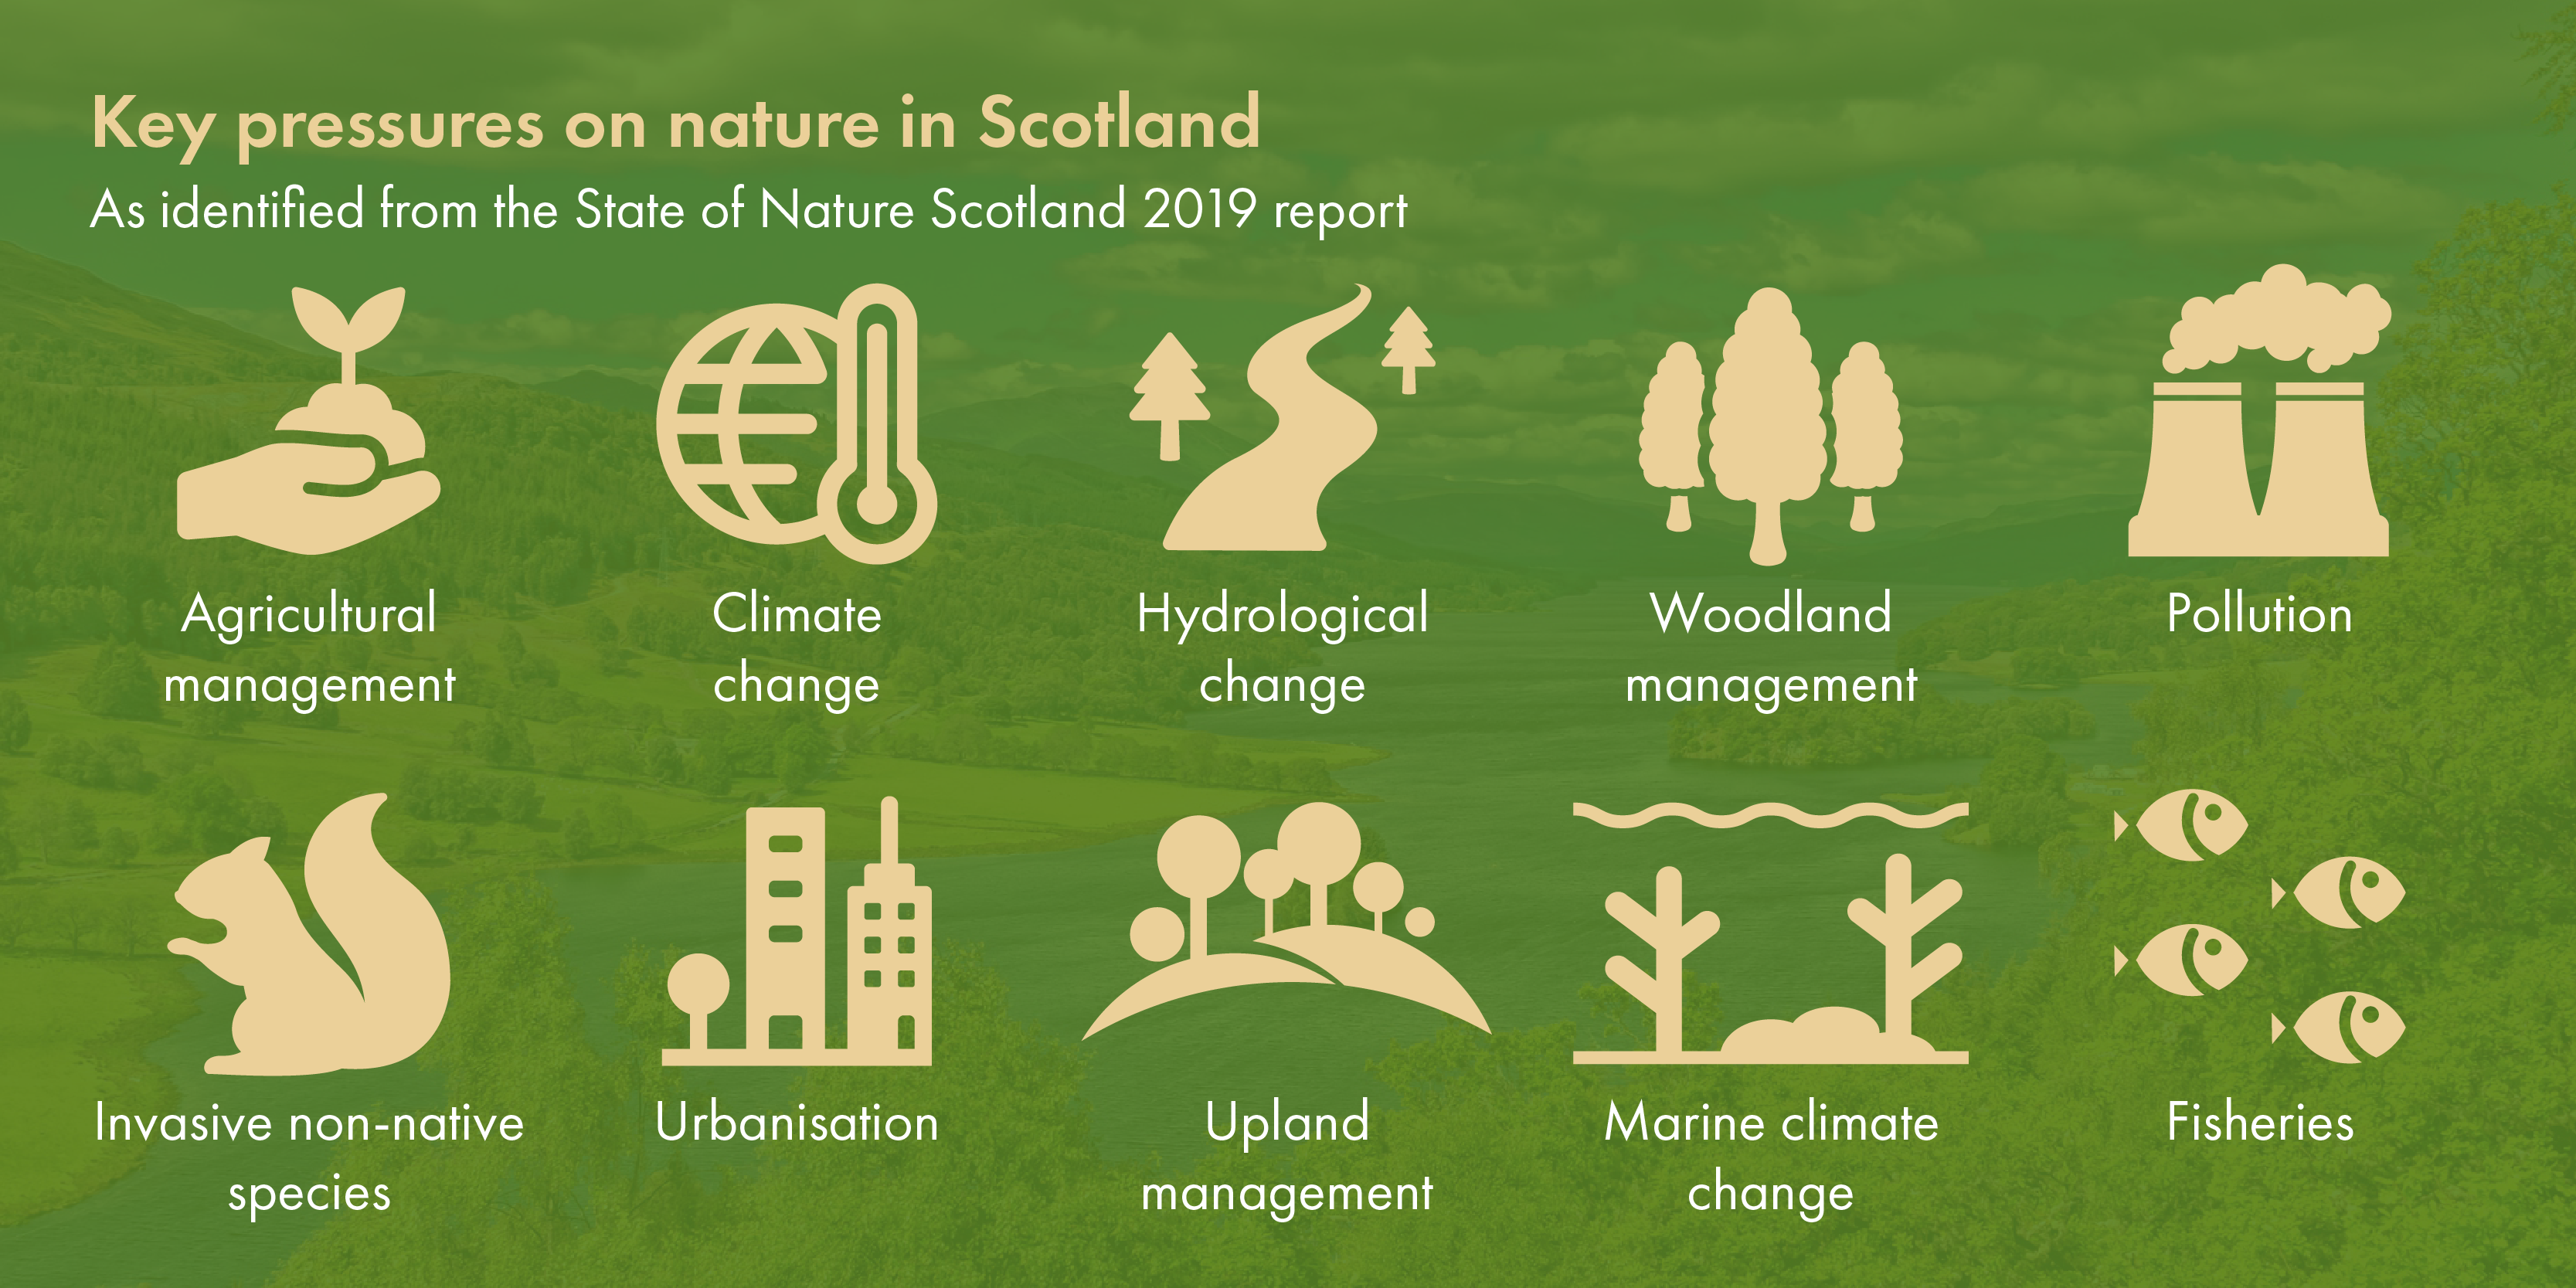 Infographic showing key pressures on nature in Scotland. These are agricultural management, climate change, hydrological change, woodland management, pollution, invasive non-native species, urbanisation, upland management, marine climate change, fisheries.